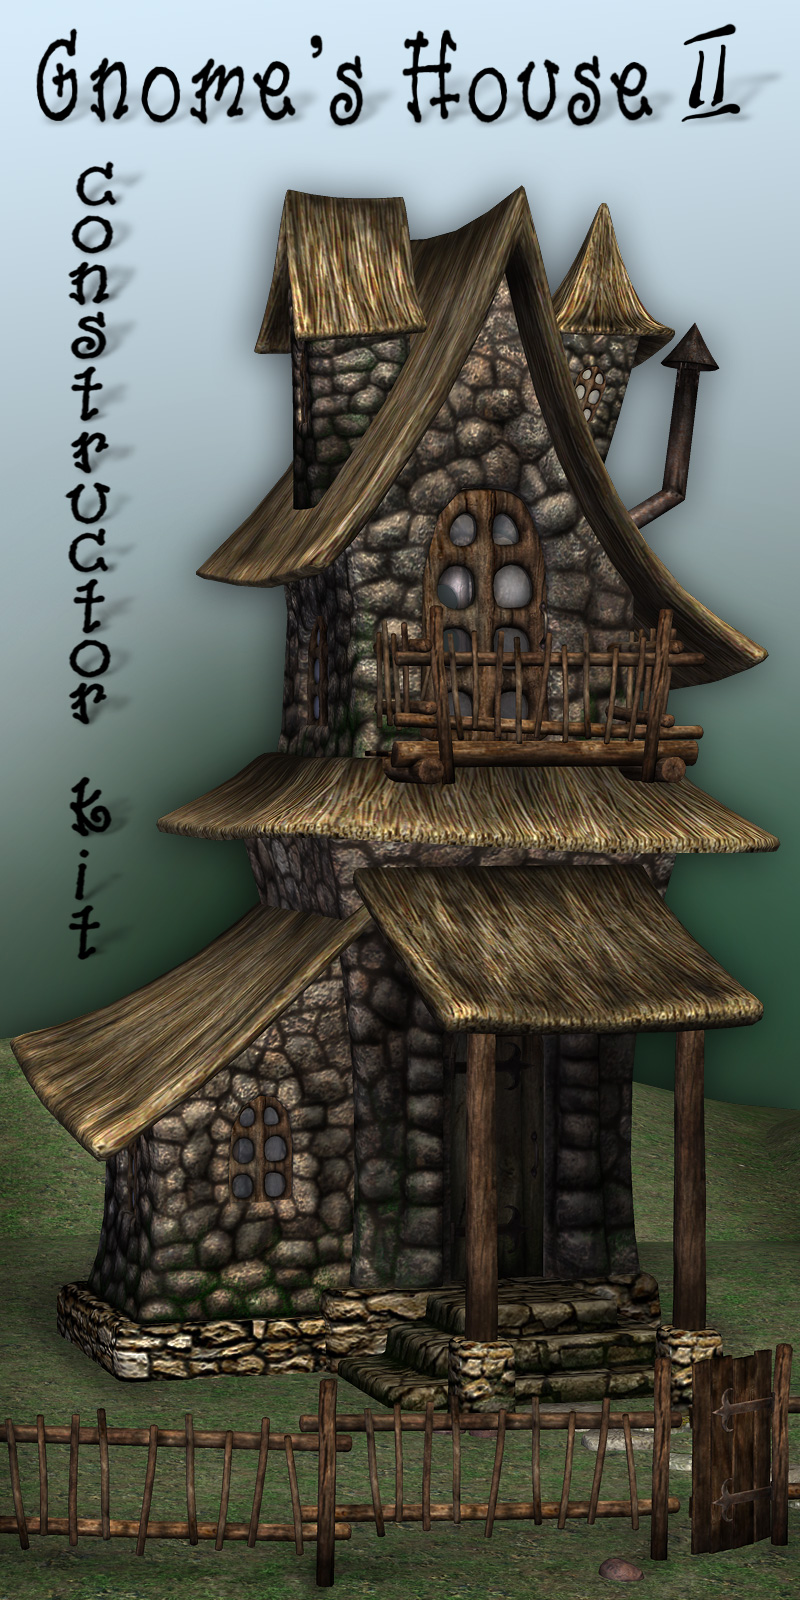 Gnome's House 2